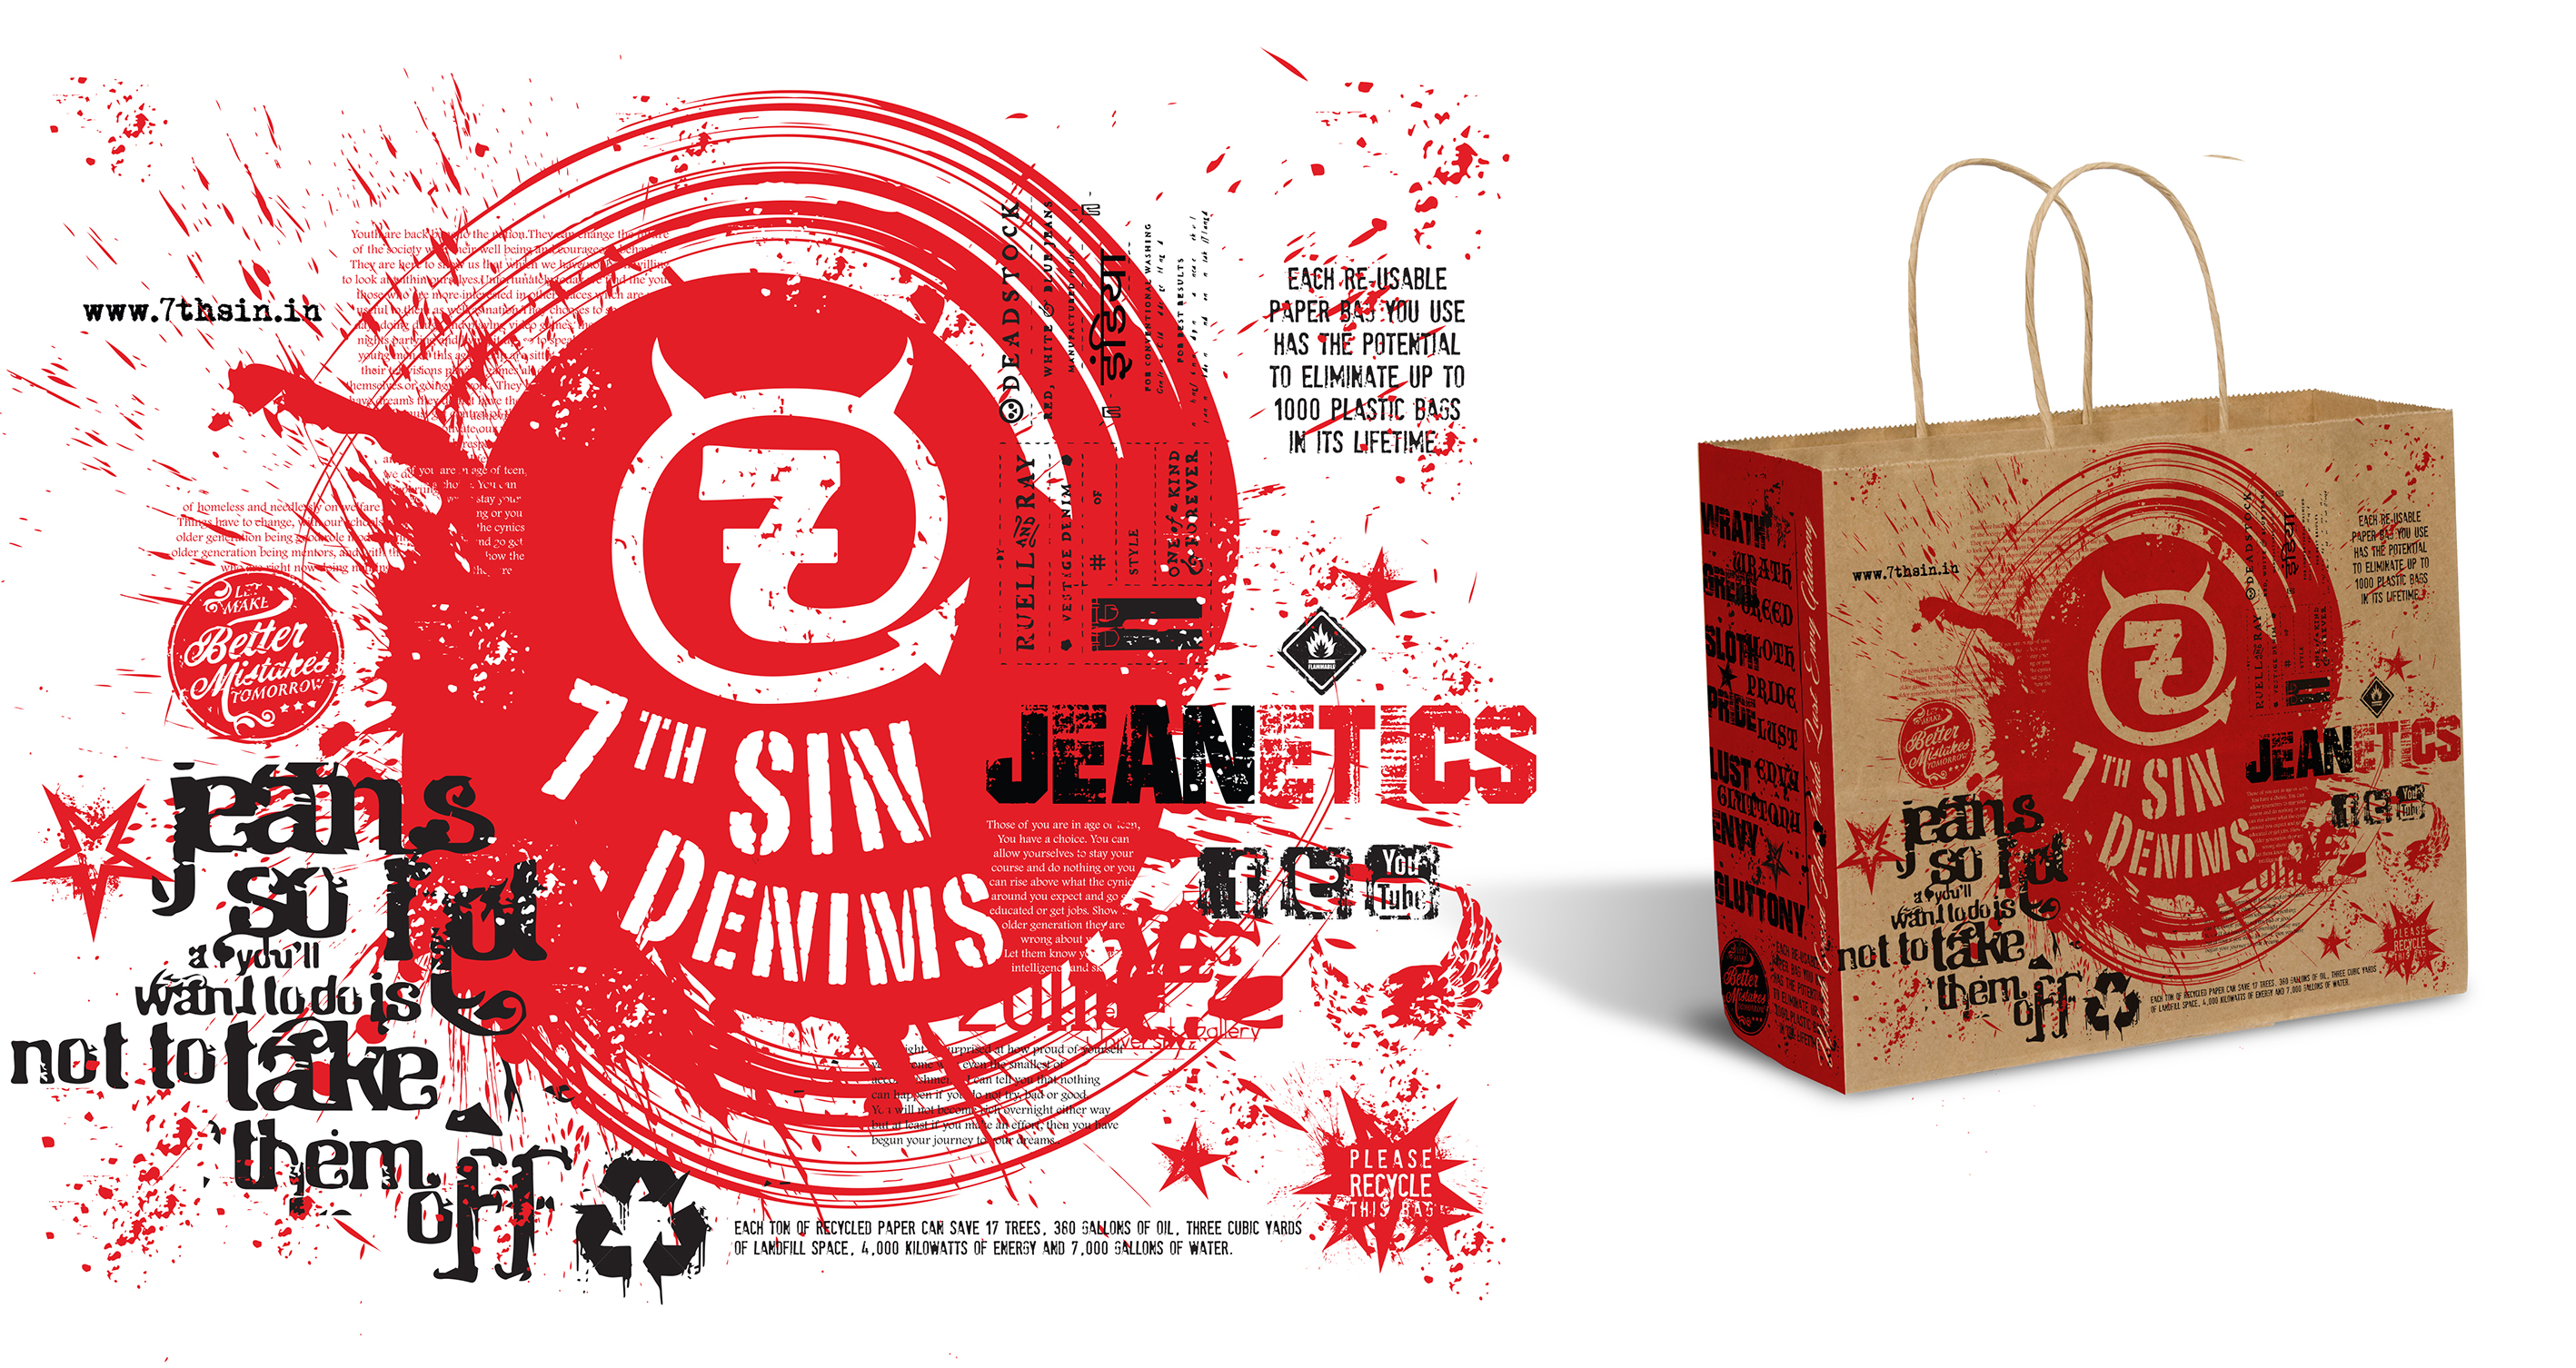 7th SIN Denims